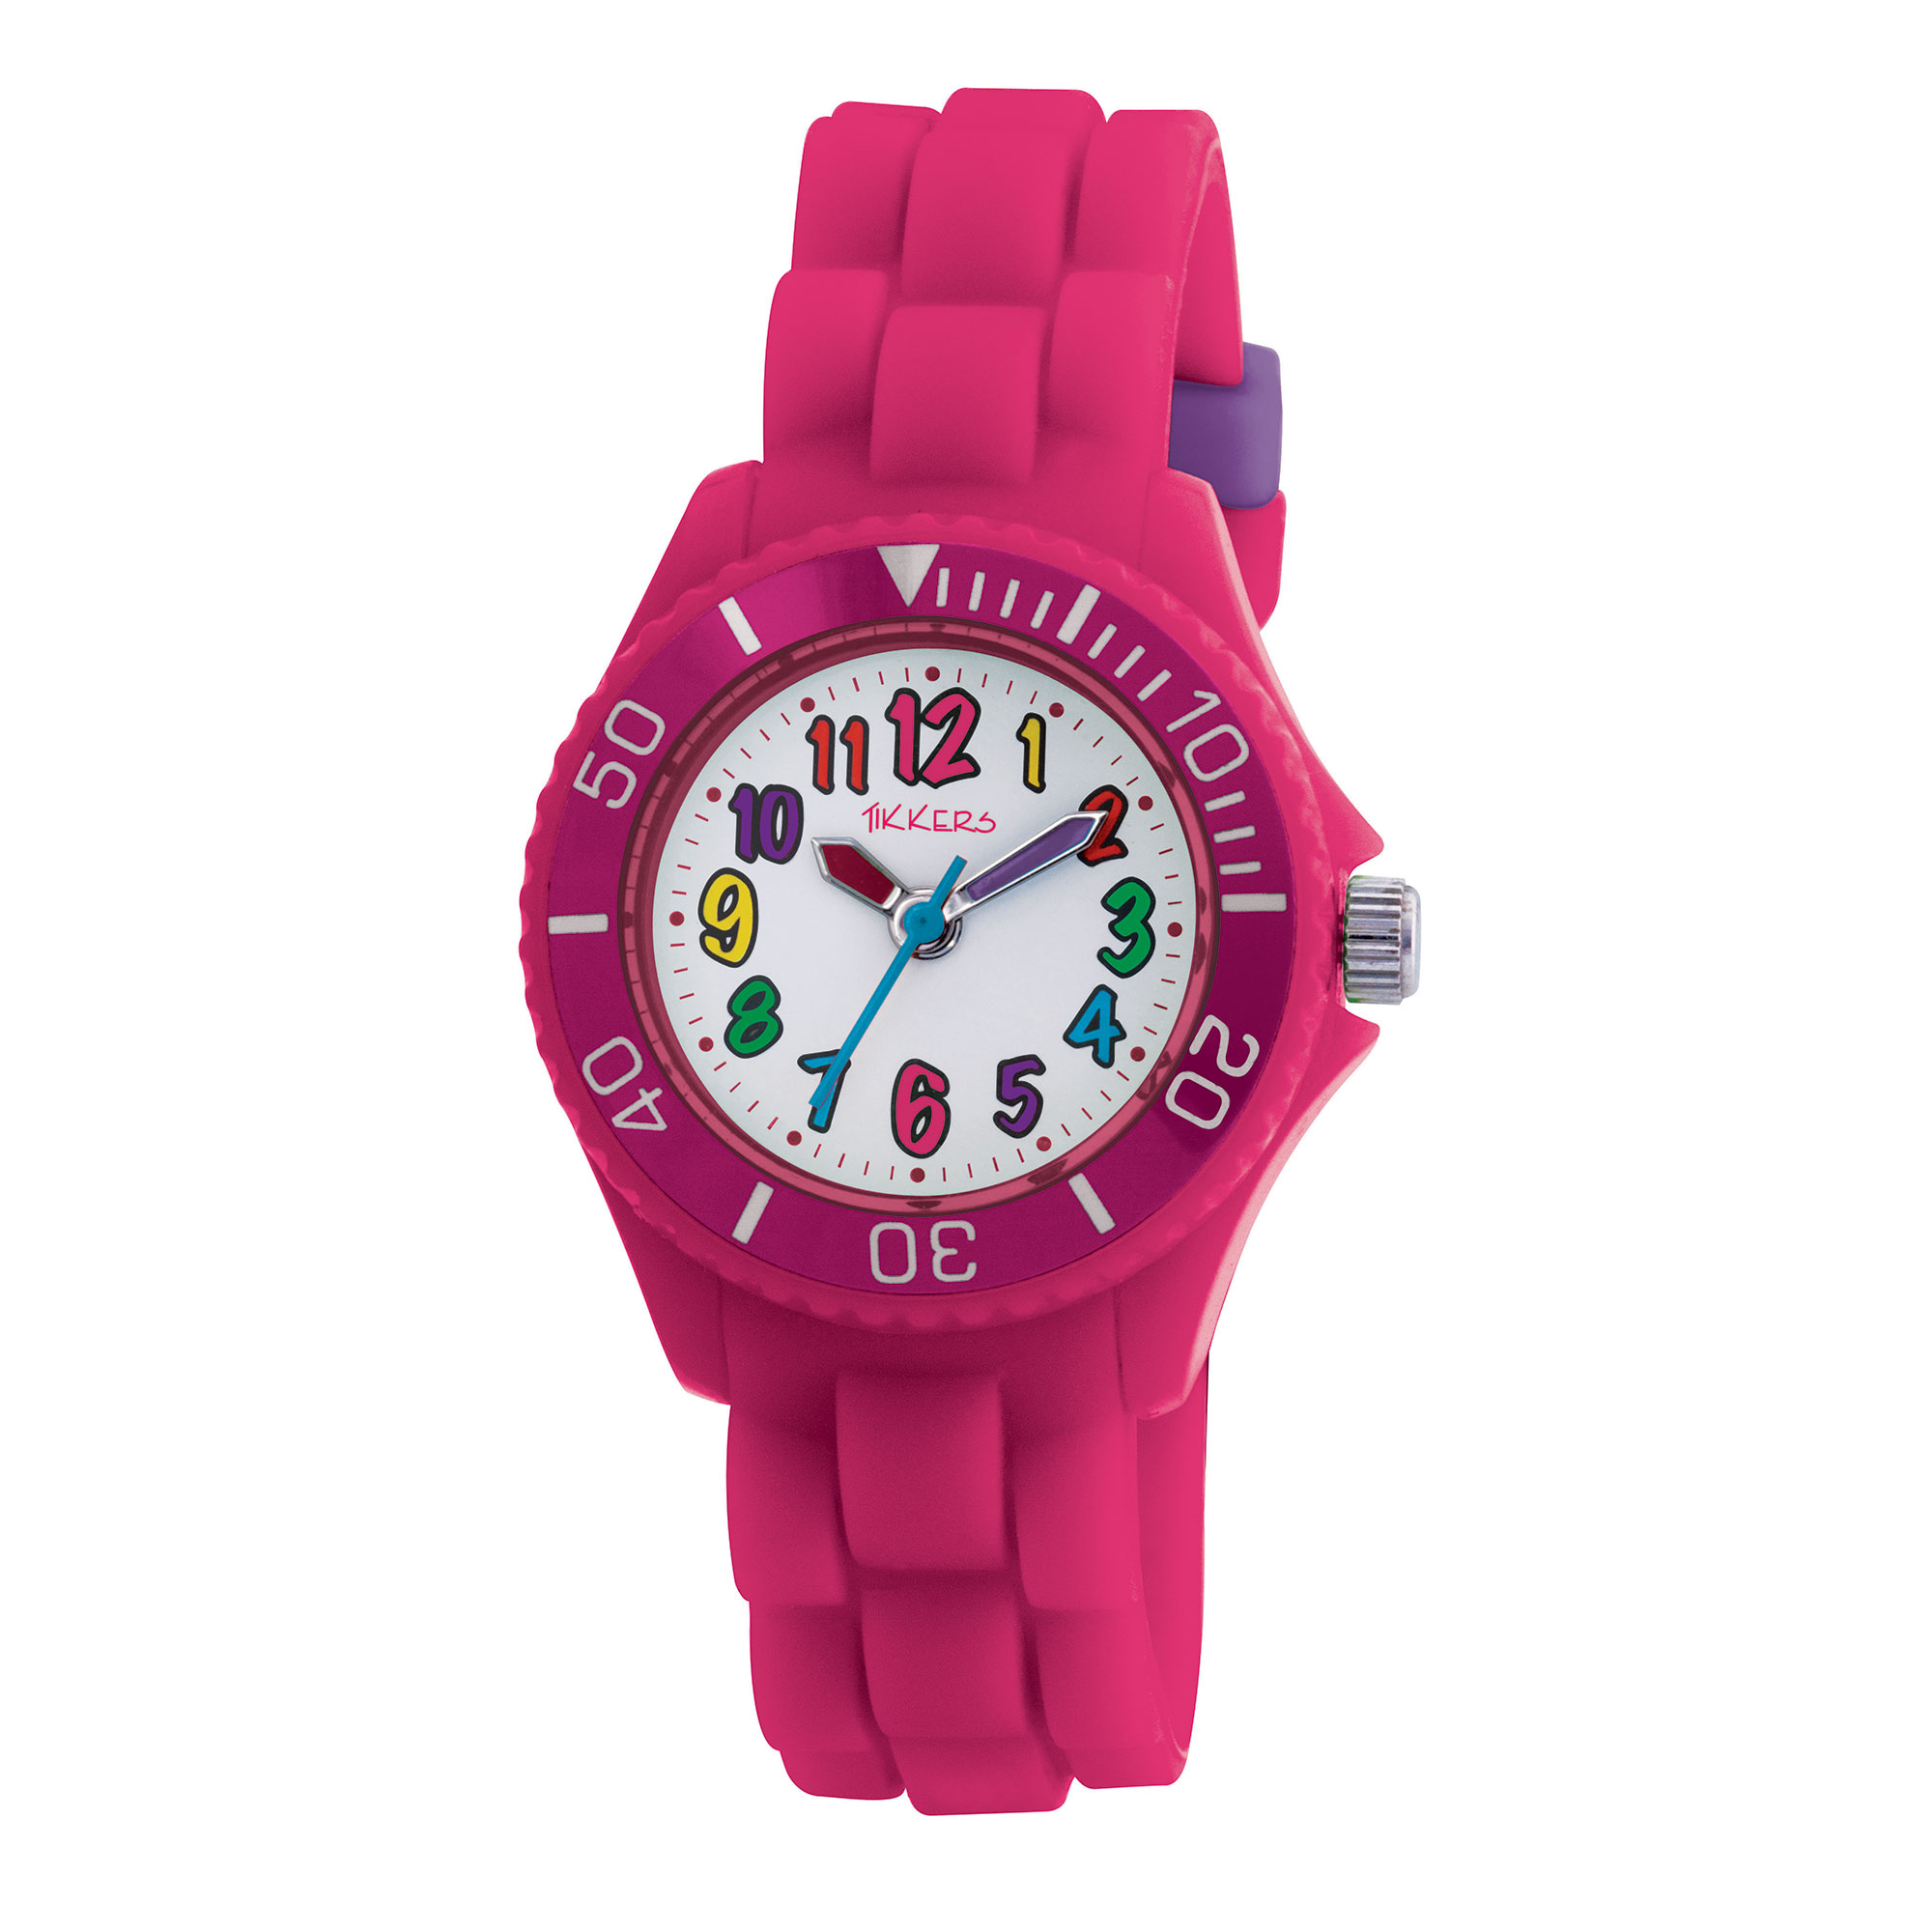 Tikkers Pink Silicon Watch